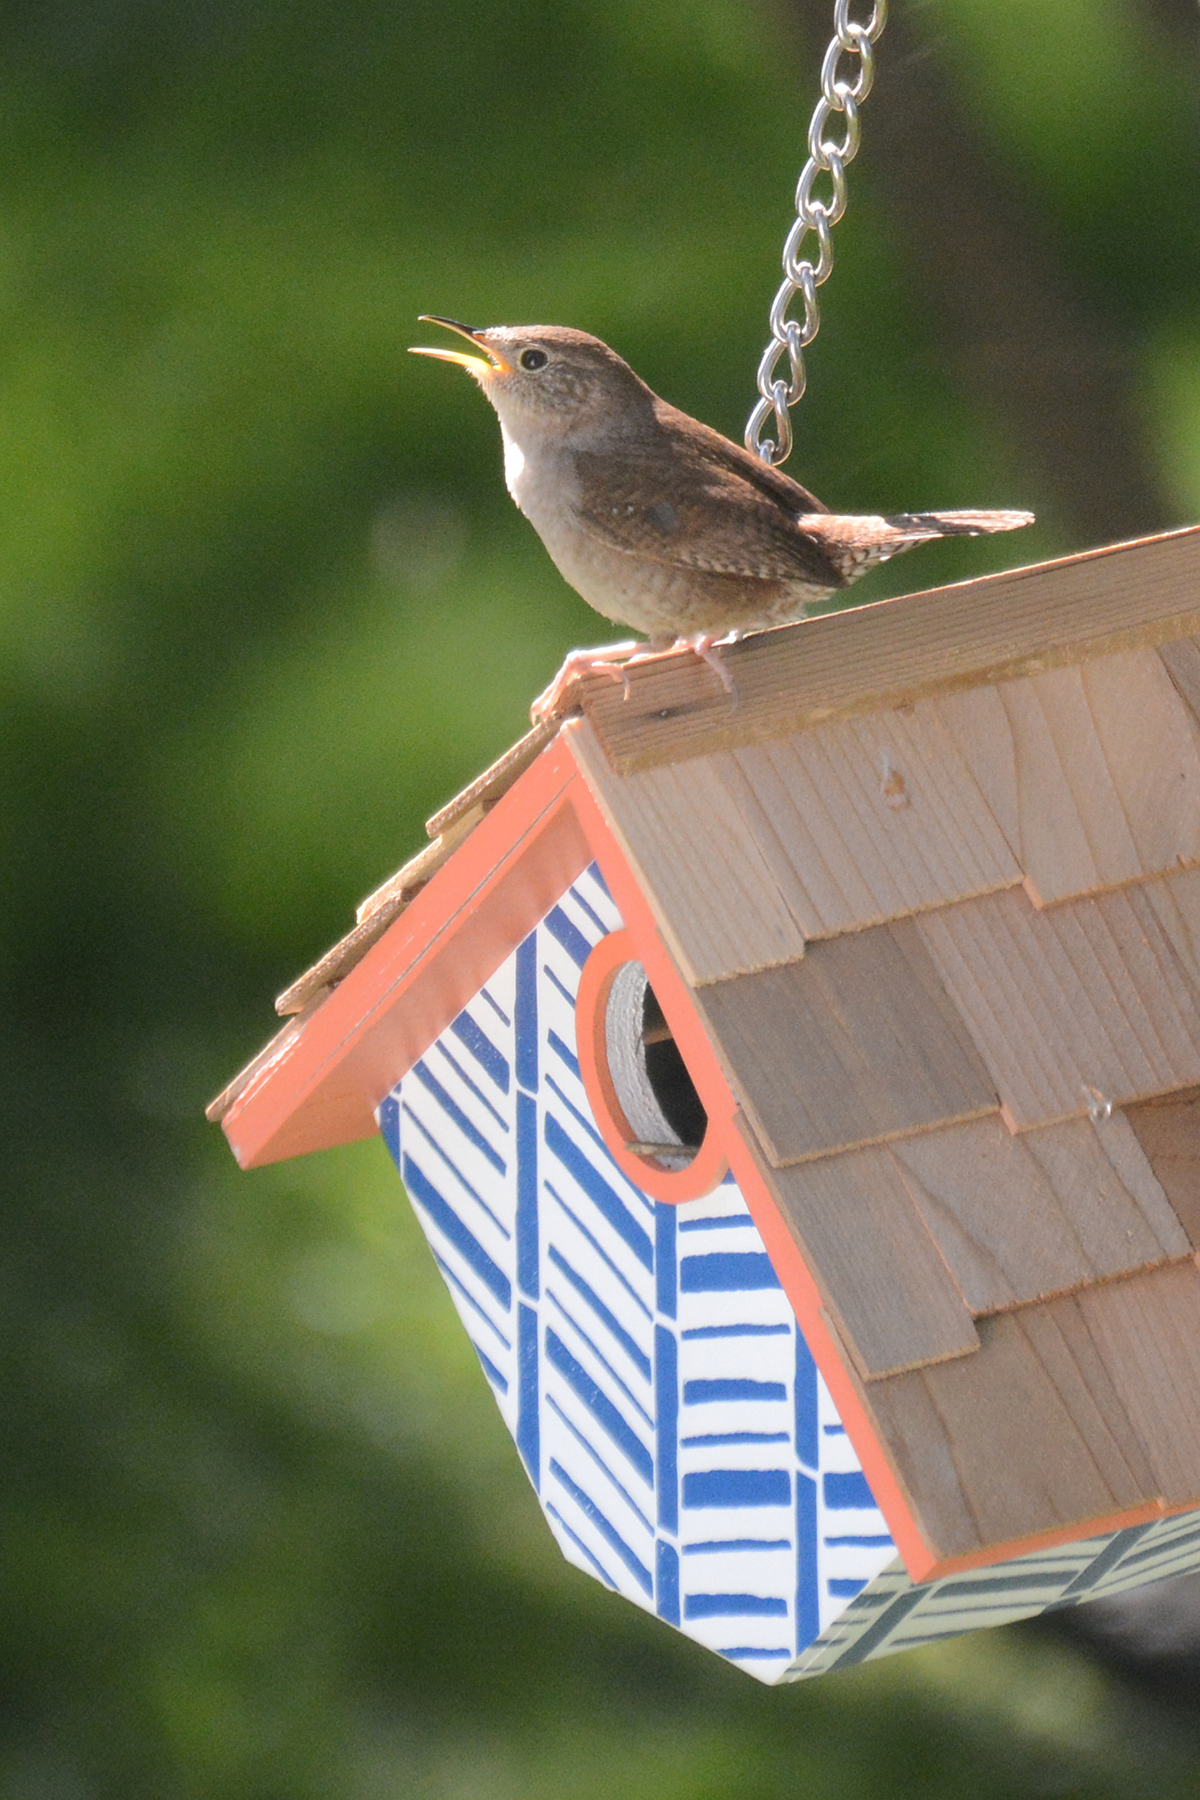 2016-05-13-backyard-wren2